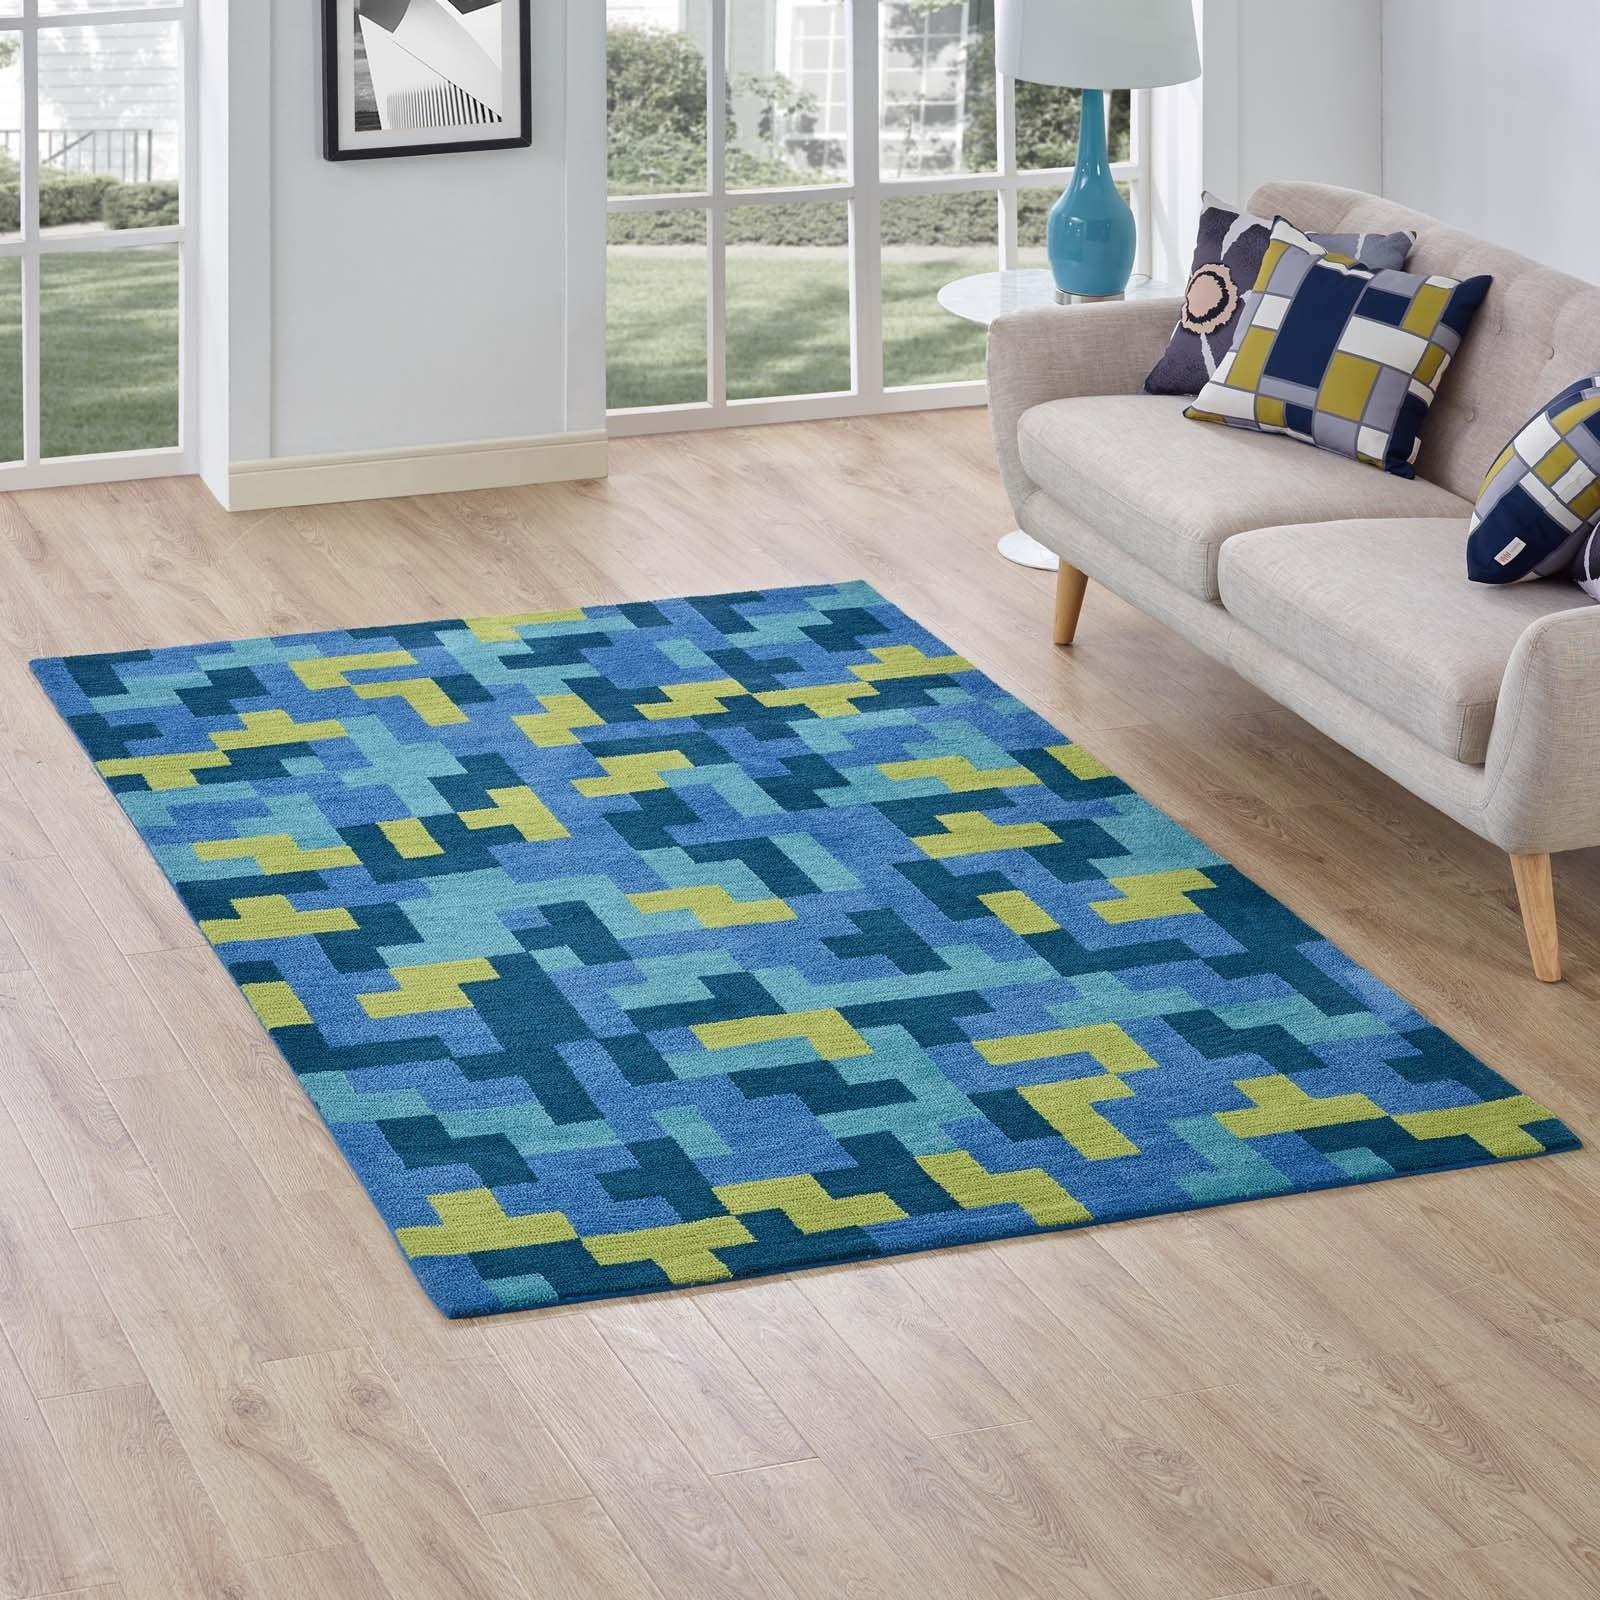 Andela Interlocking Block Mosaic 5x8 Area Rug in Multicolored Blue and Light Olive Green Product Image